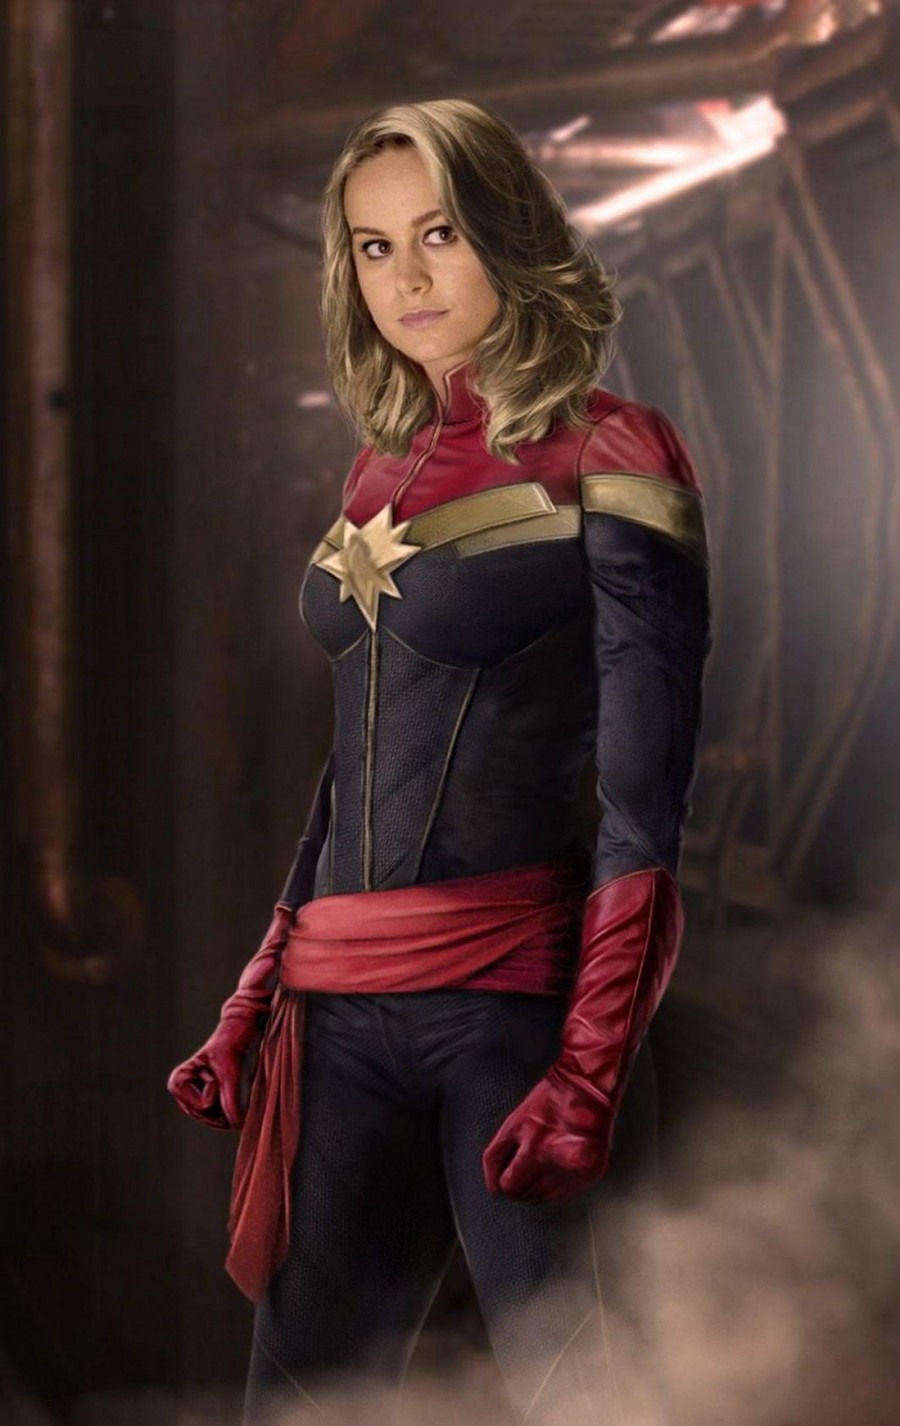 Brie Larson jako Kapitan Marvel / East News